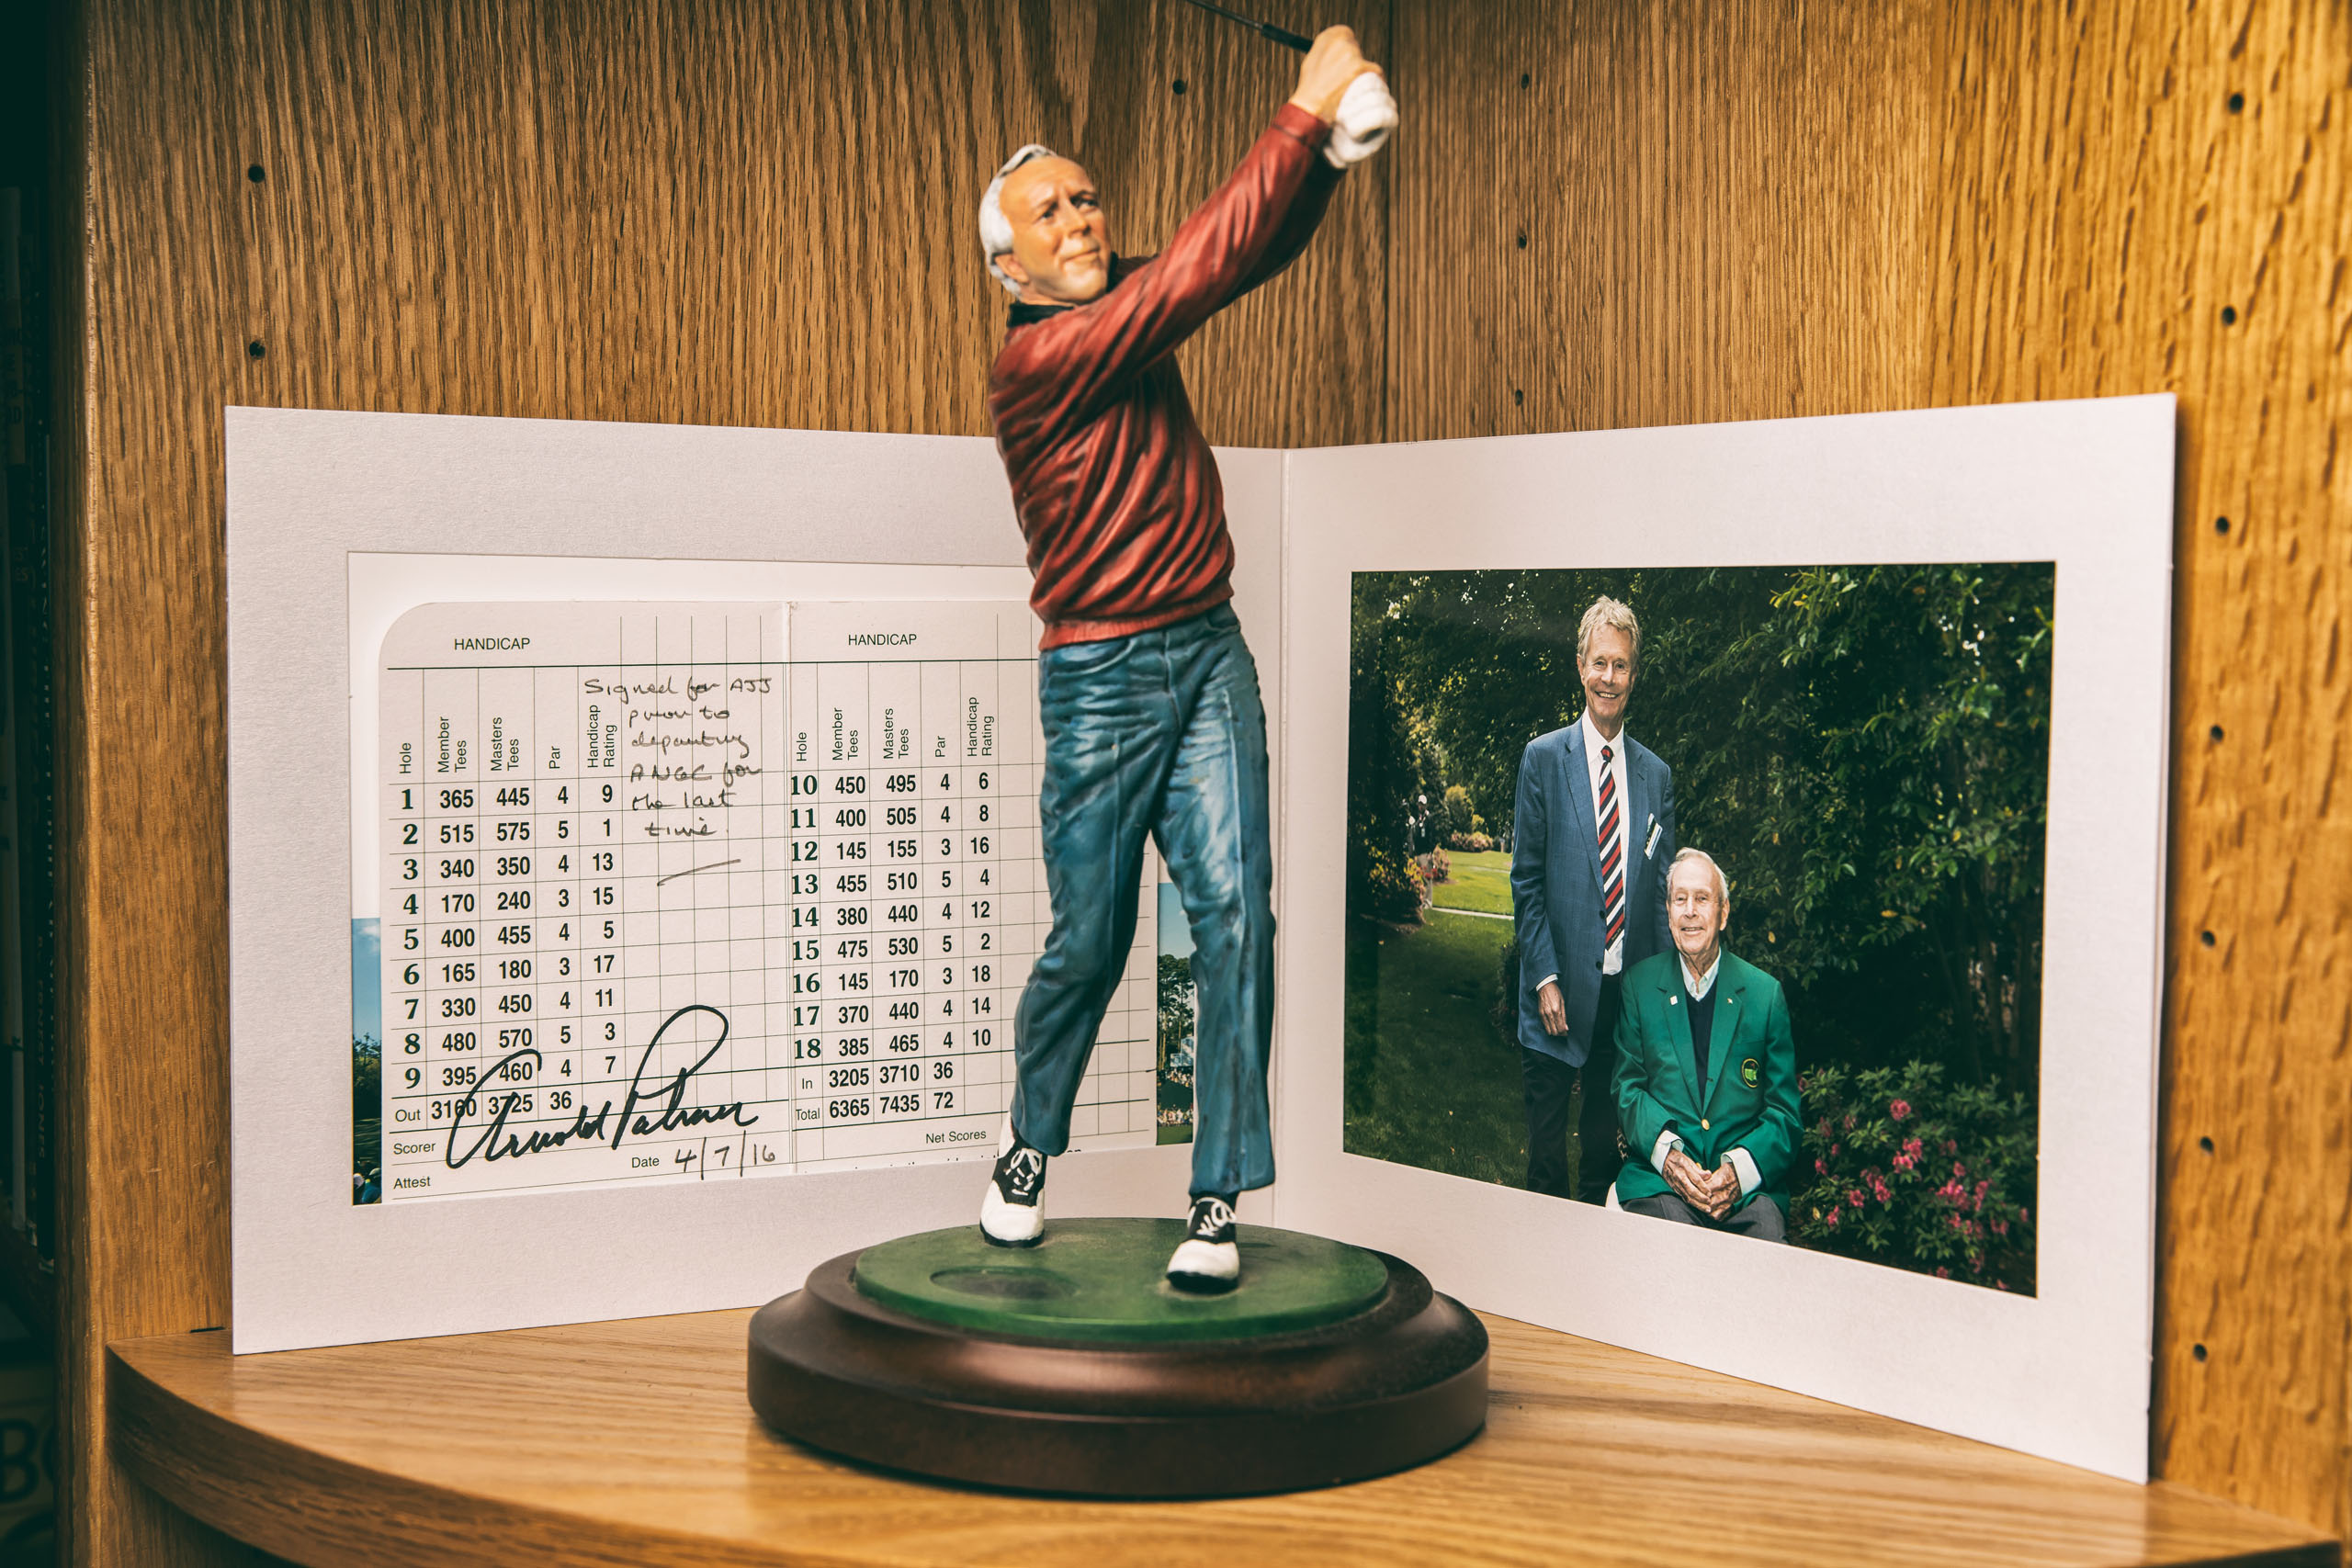 Arnold Palmer Autographed Masters Scorecard And Photograph 2016. Photography by Todd Rosenberg.